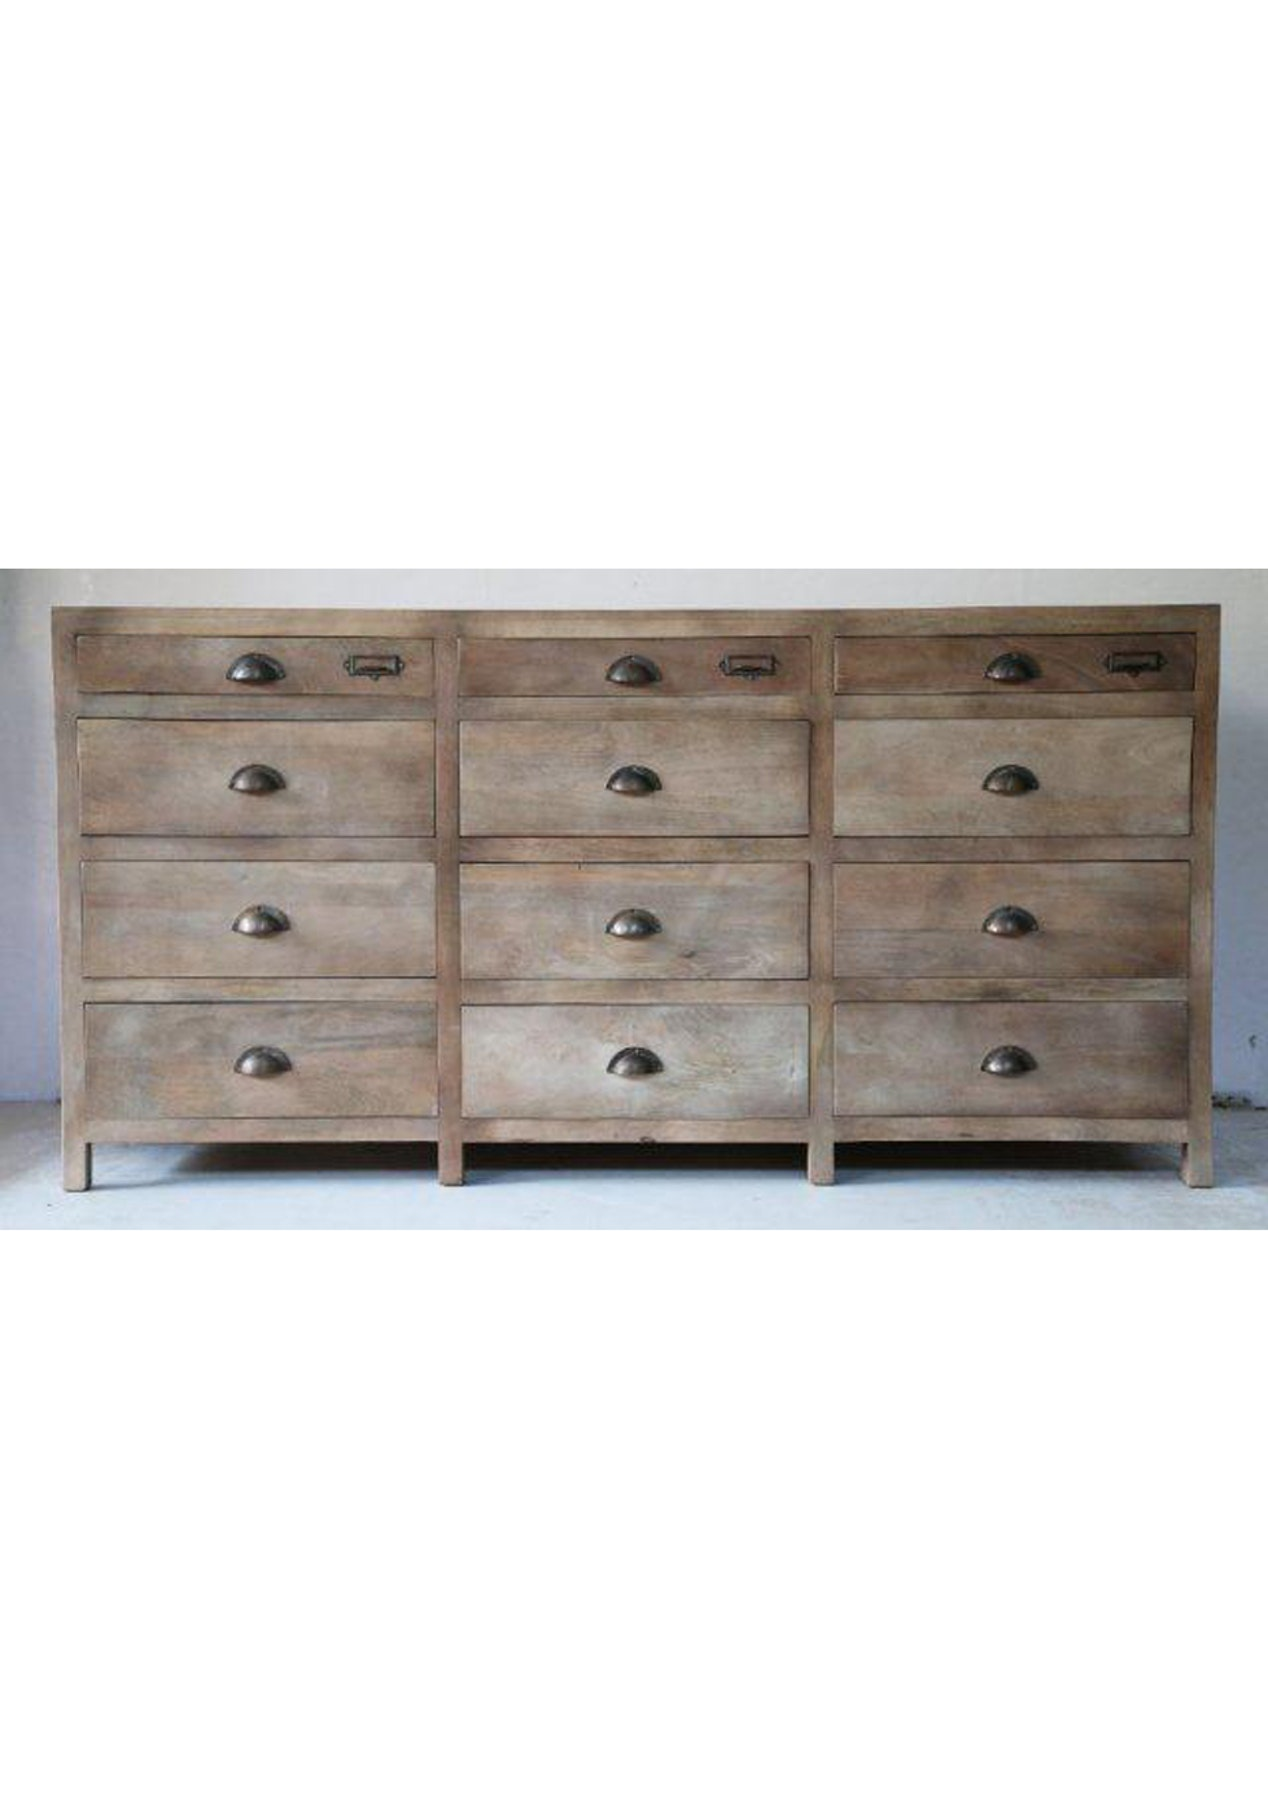 12 Drawer Chest Washed Wood French Style Furniture Edit